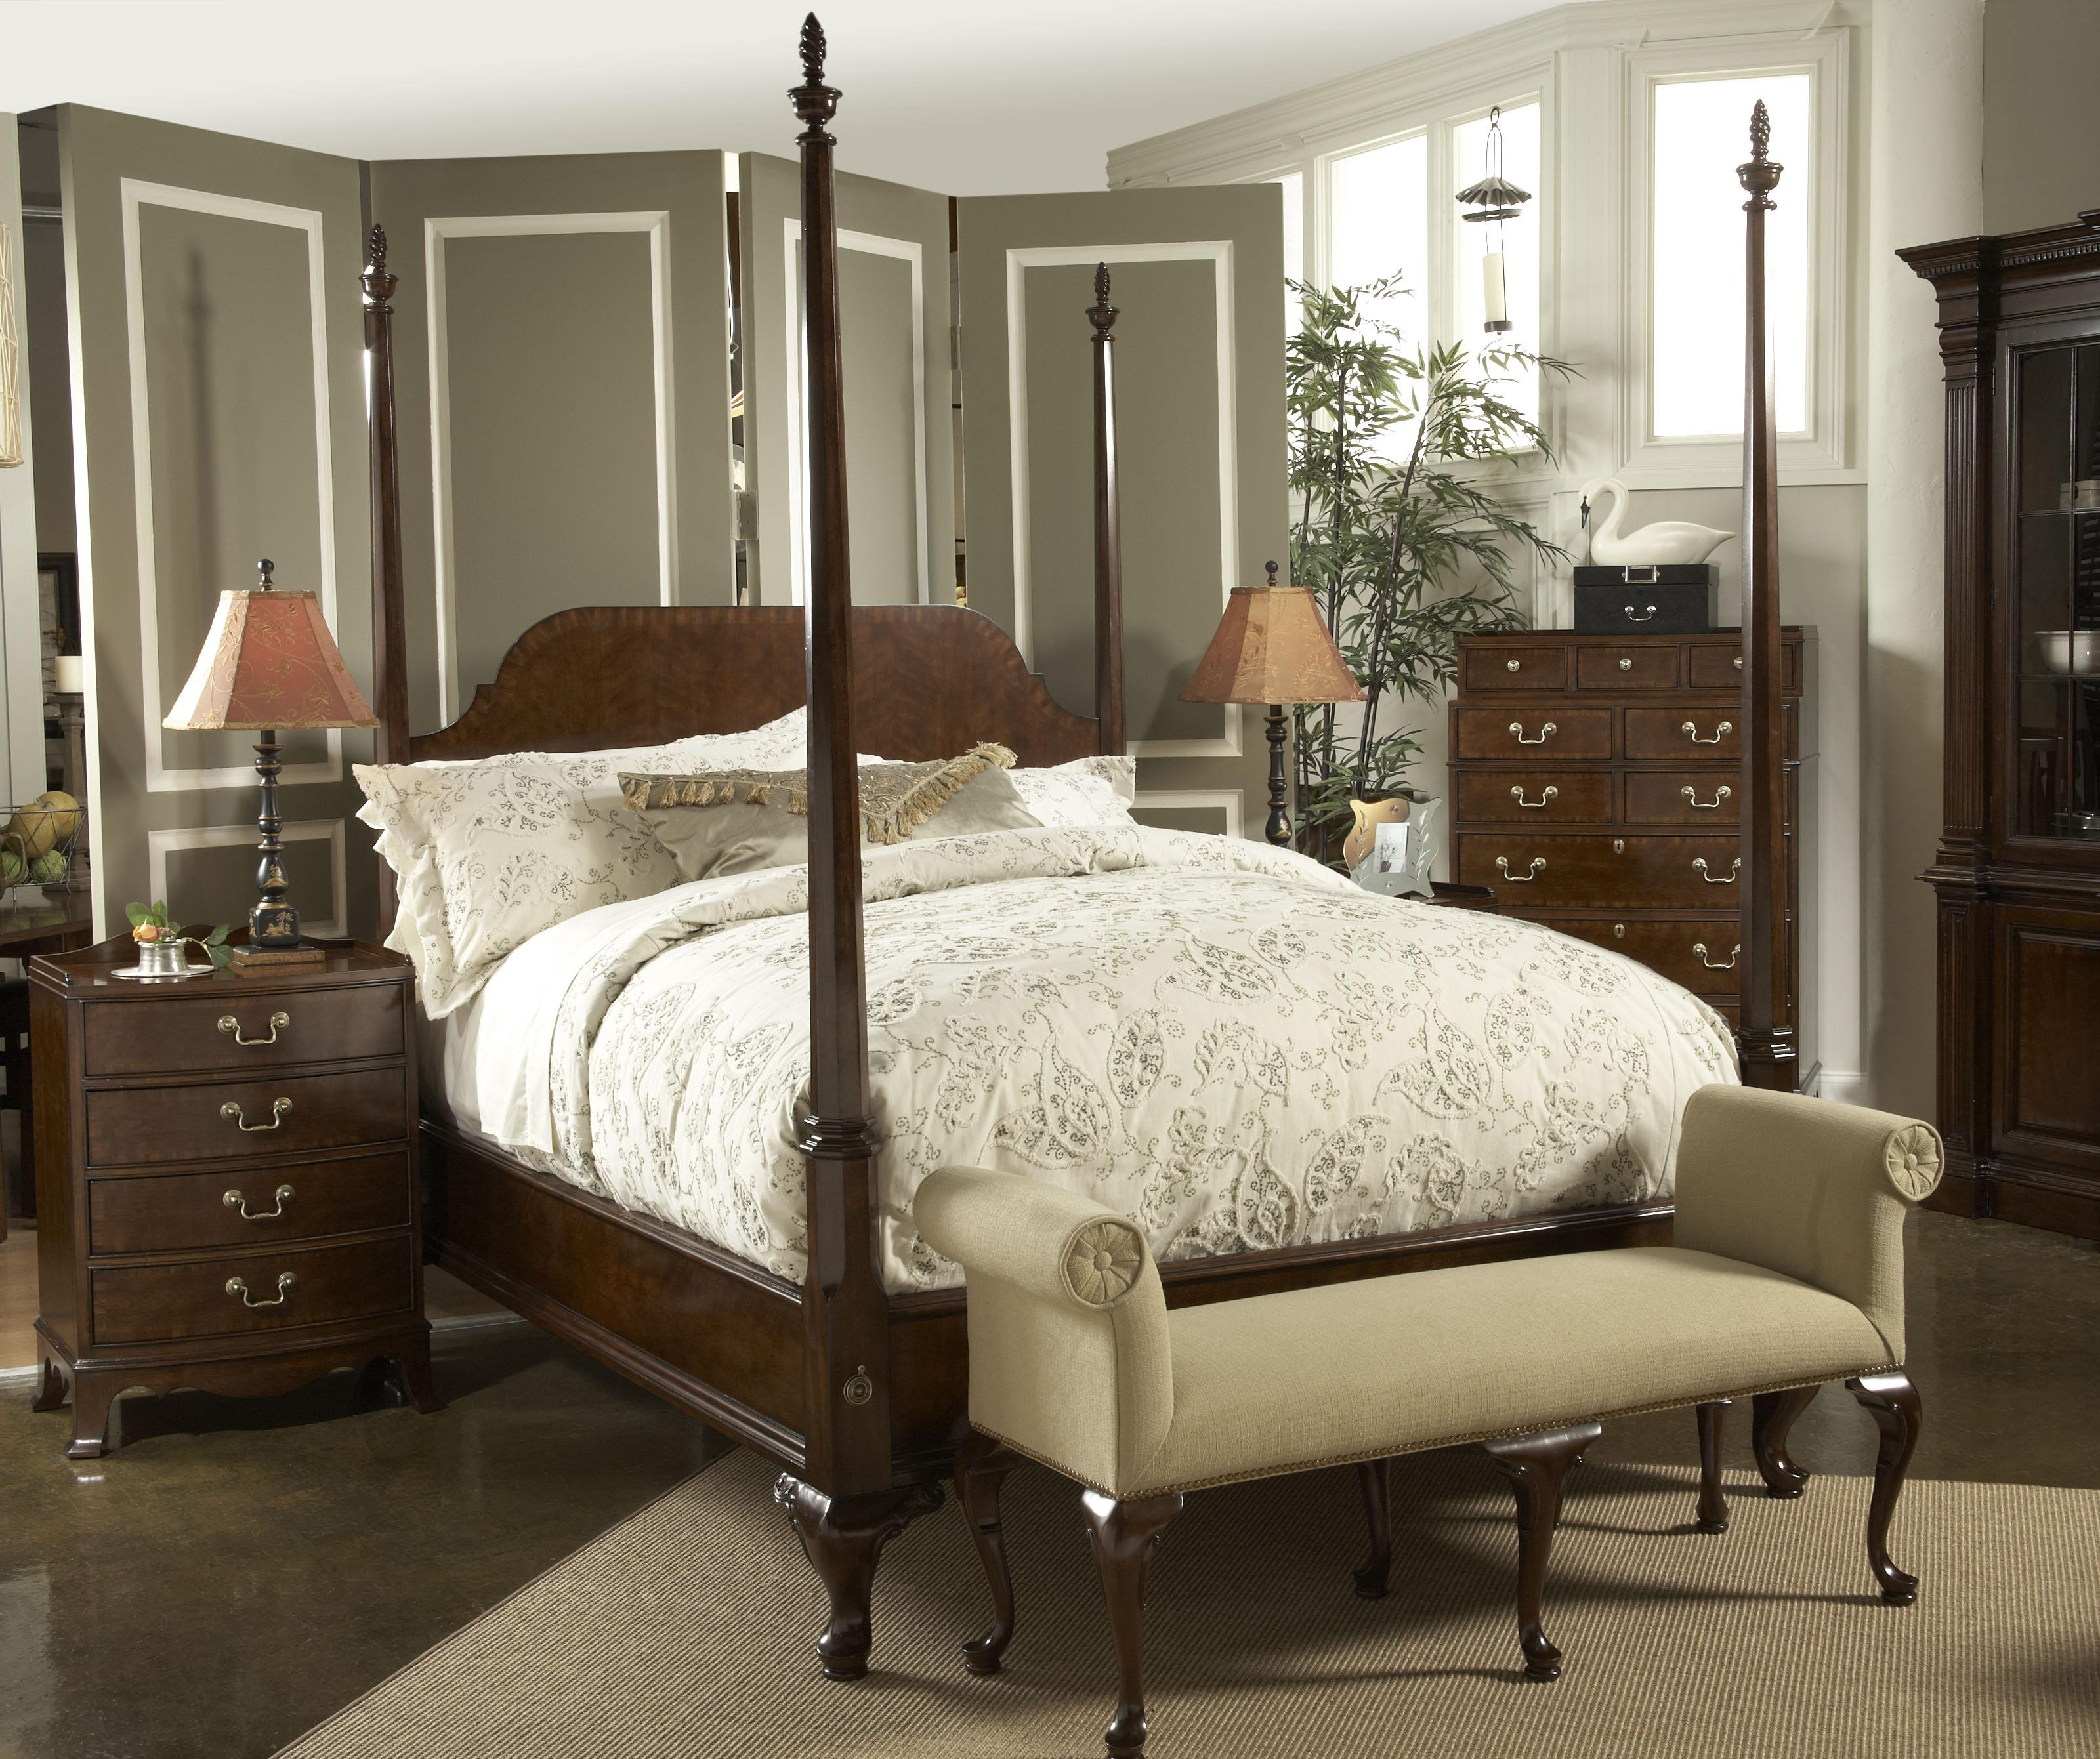 Beds With Posts Bedroom Canopy Beds Summerfield And